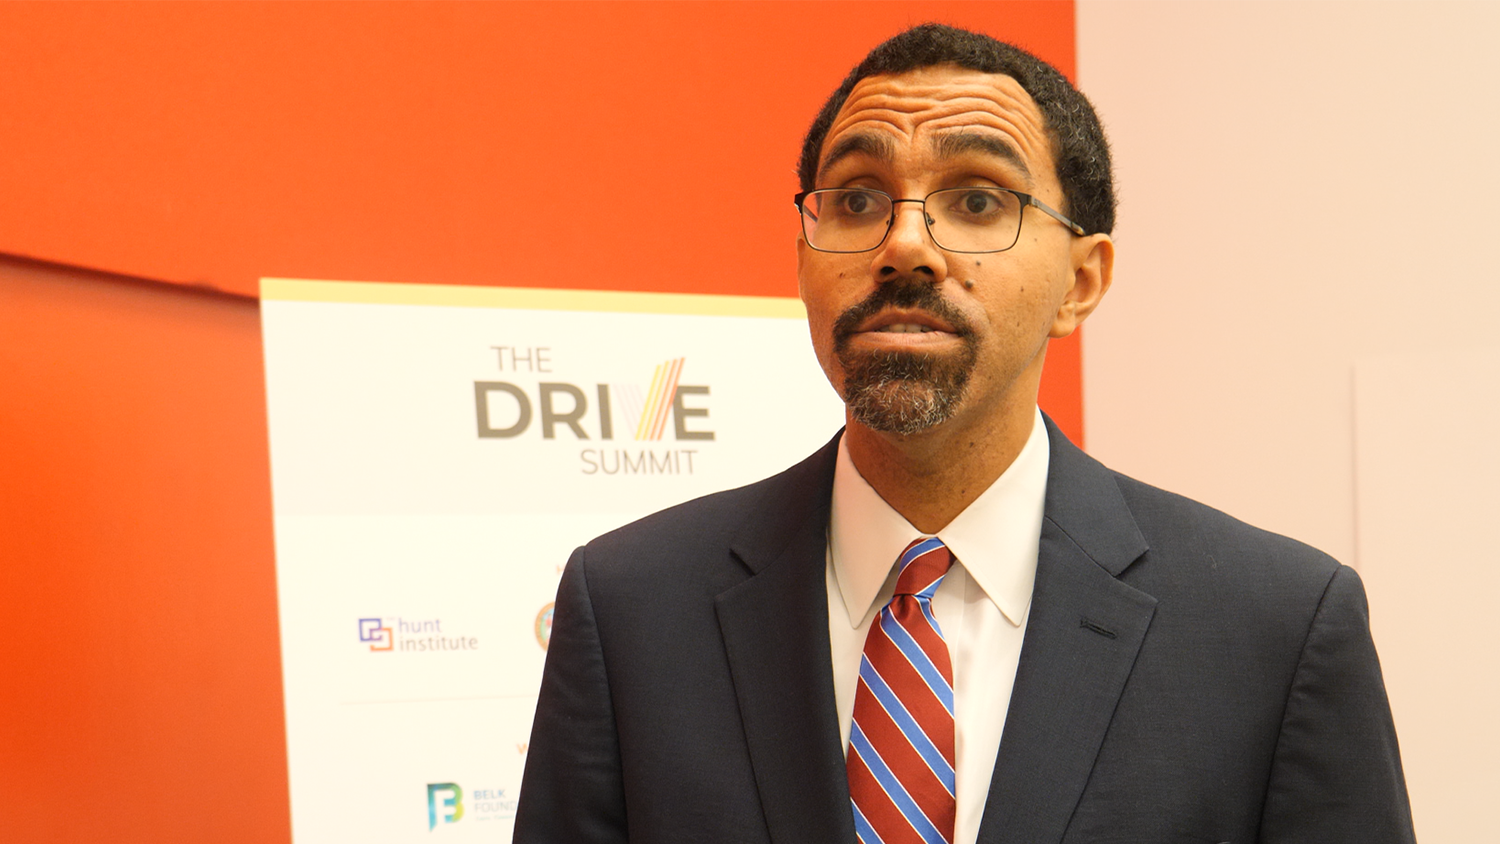 Former U.S. Secretary of Education John B. King Jr. spoke with the NC State College of Education during the DRIVE Summit